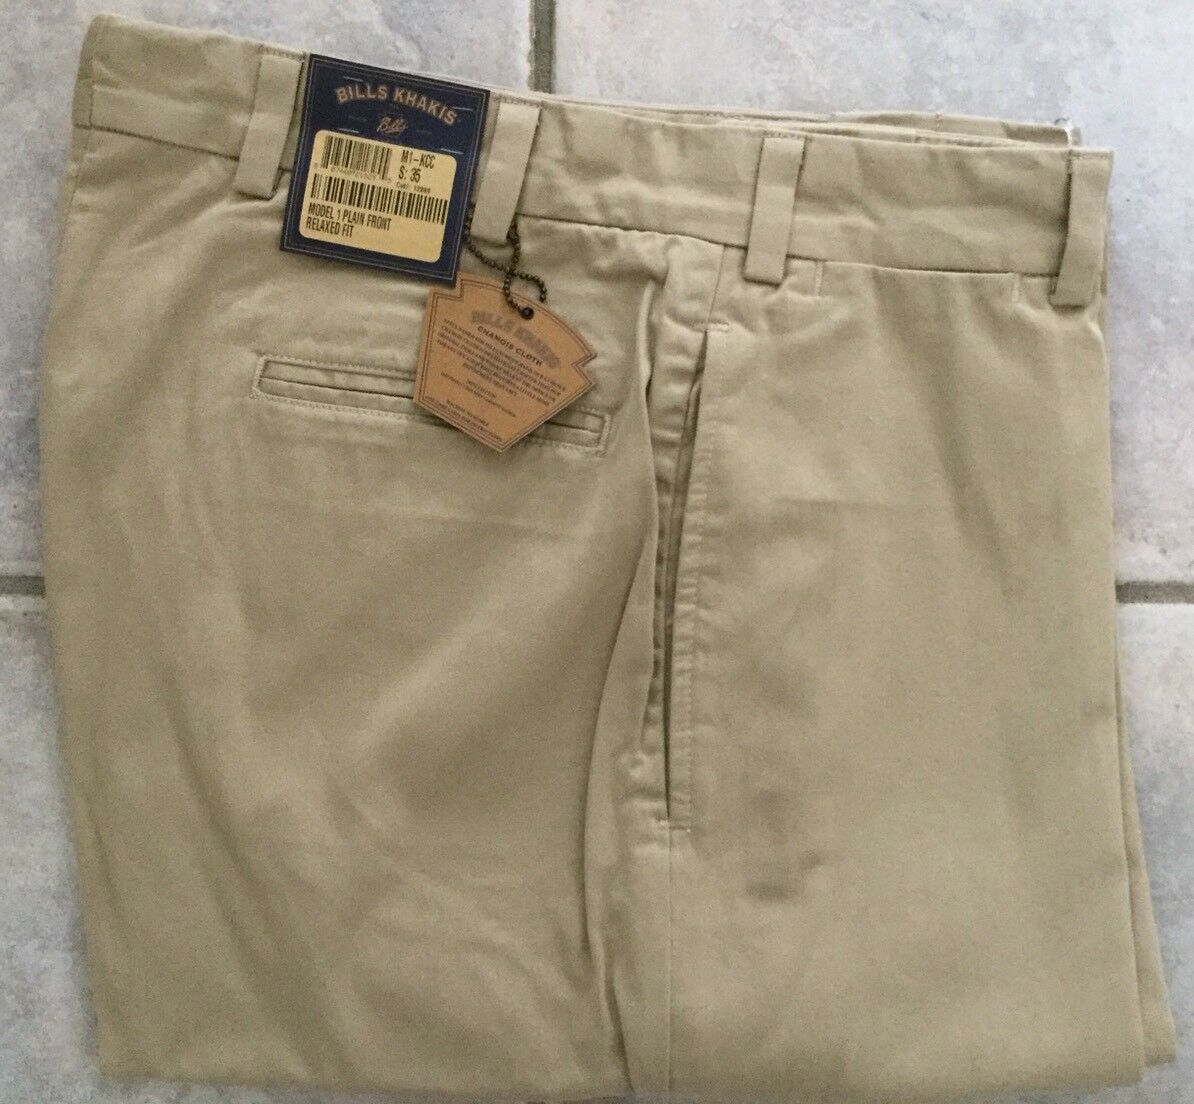 NWT-Bills khakis M1-KCC Size 33 PLain CHAMOIS CLOTH RELAX FIT KHAKI MSRP